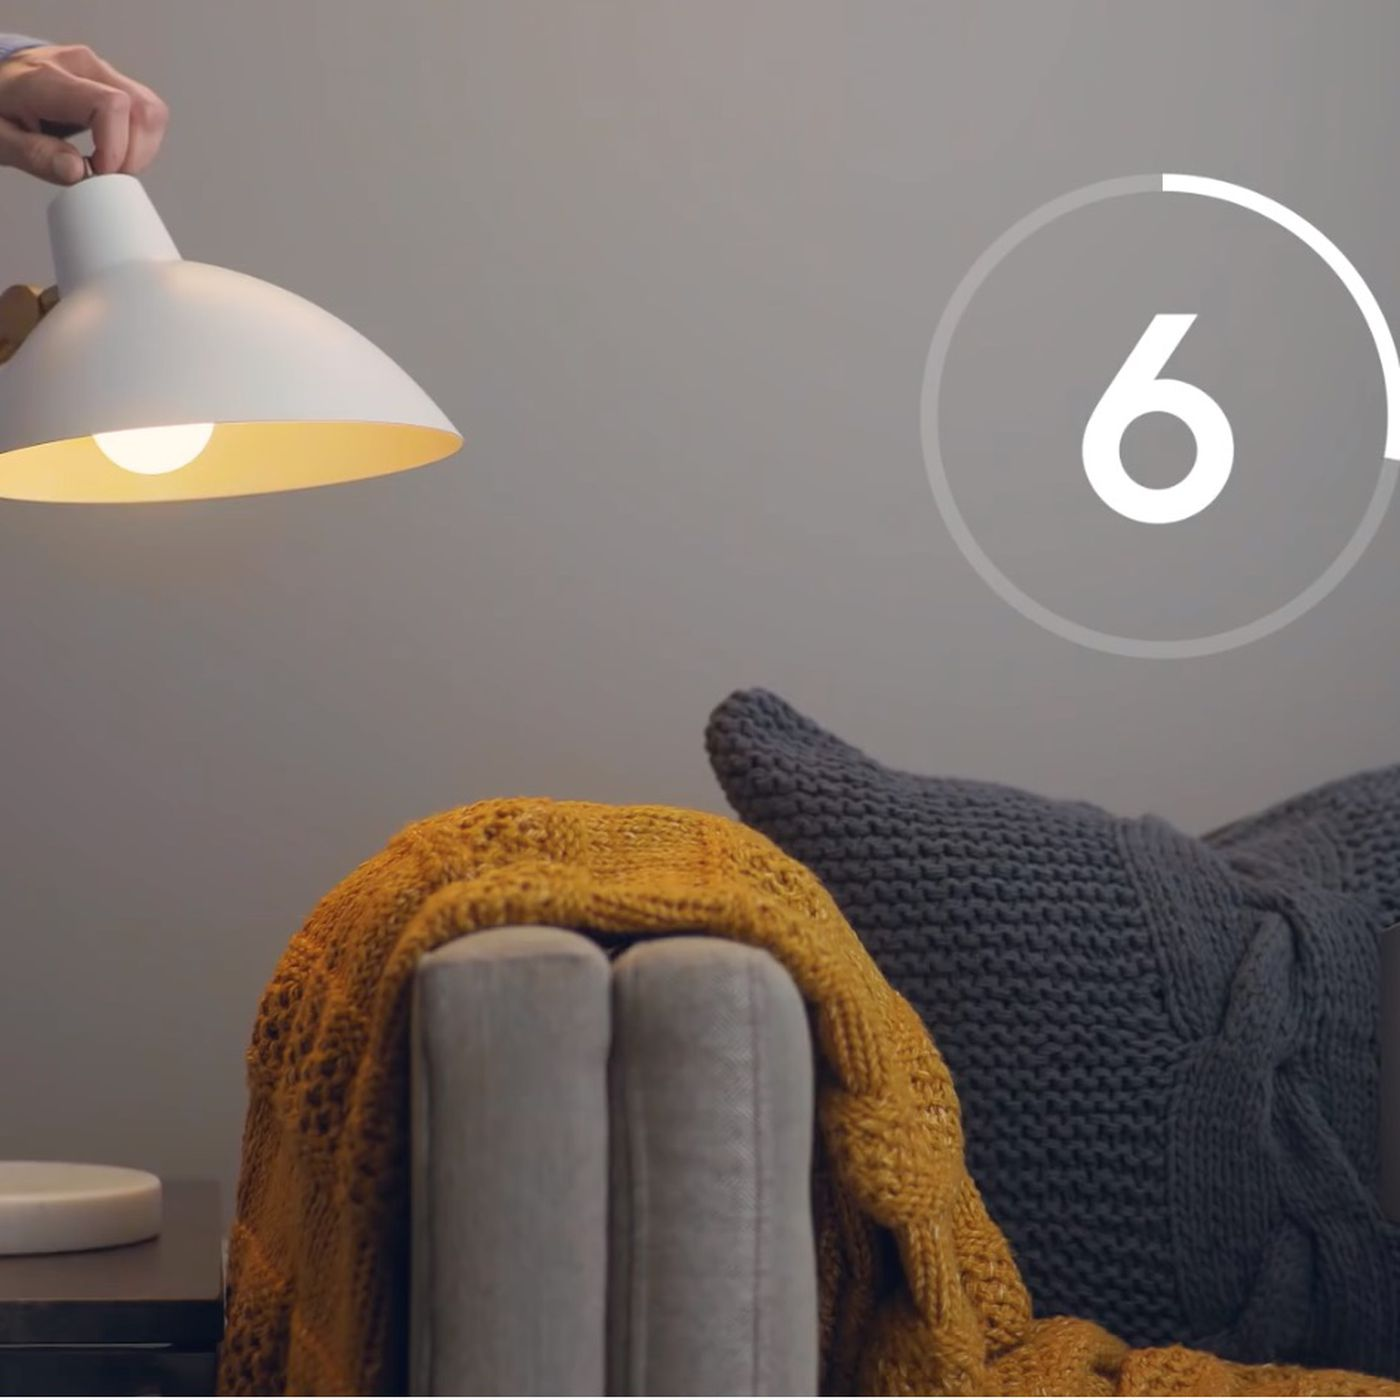 GE accidentally makes the case for not owning smart GE bulbs - The Verge